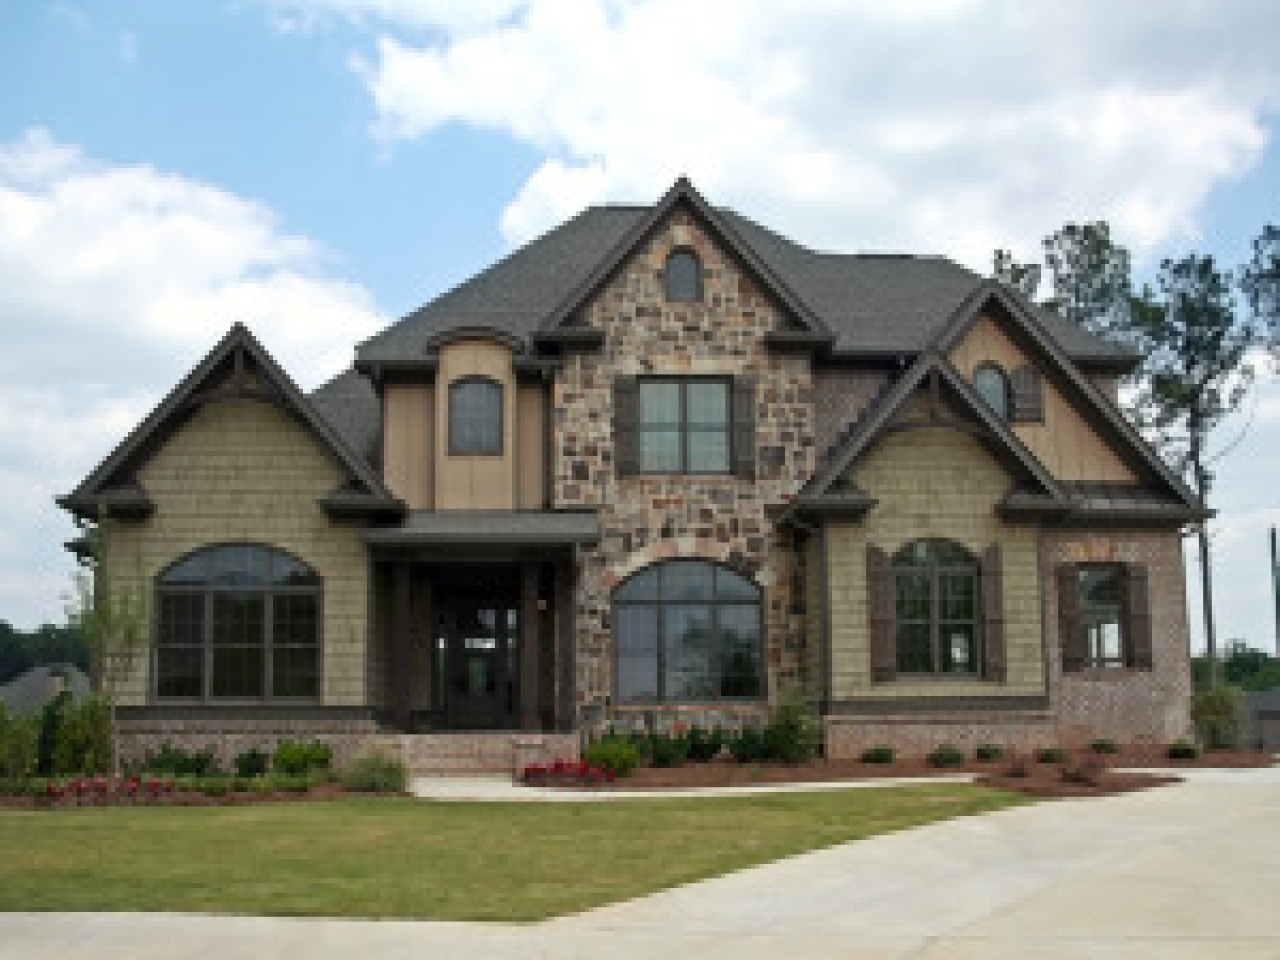 Design Your Own Home Entertainment Center Wood And Stone Homes Pretty Home Exterior Custom Built